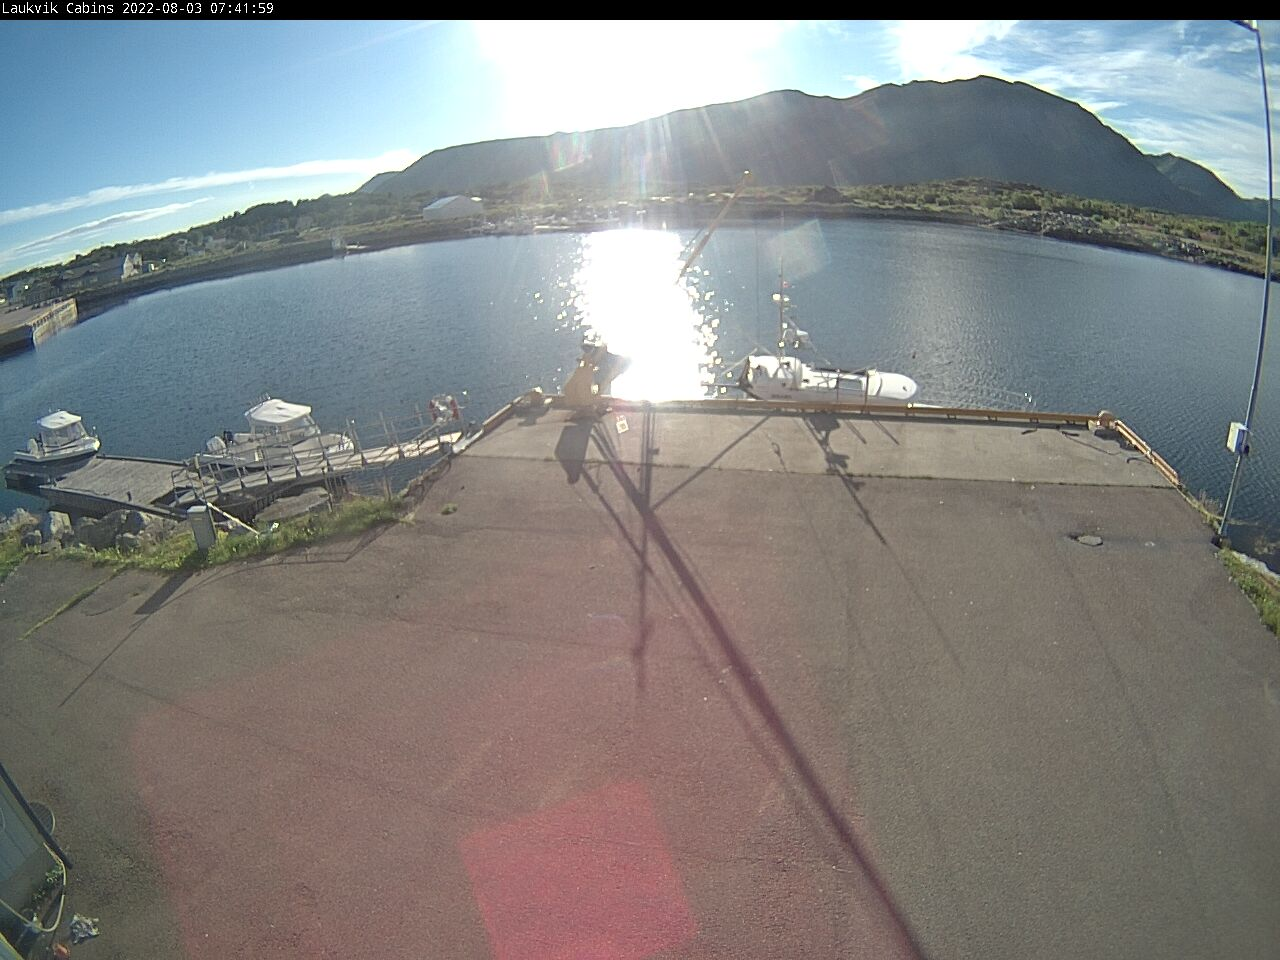 Webcamera from Laukvik, Lofoten, Norway